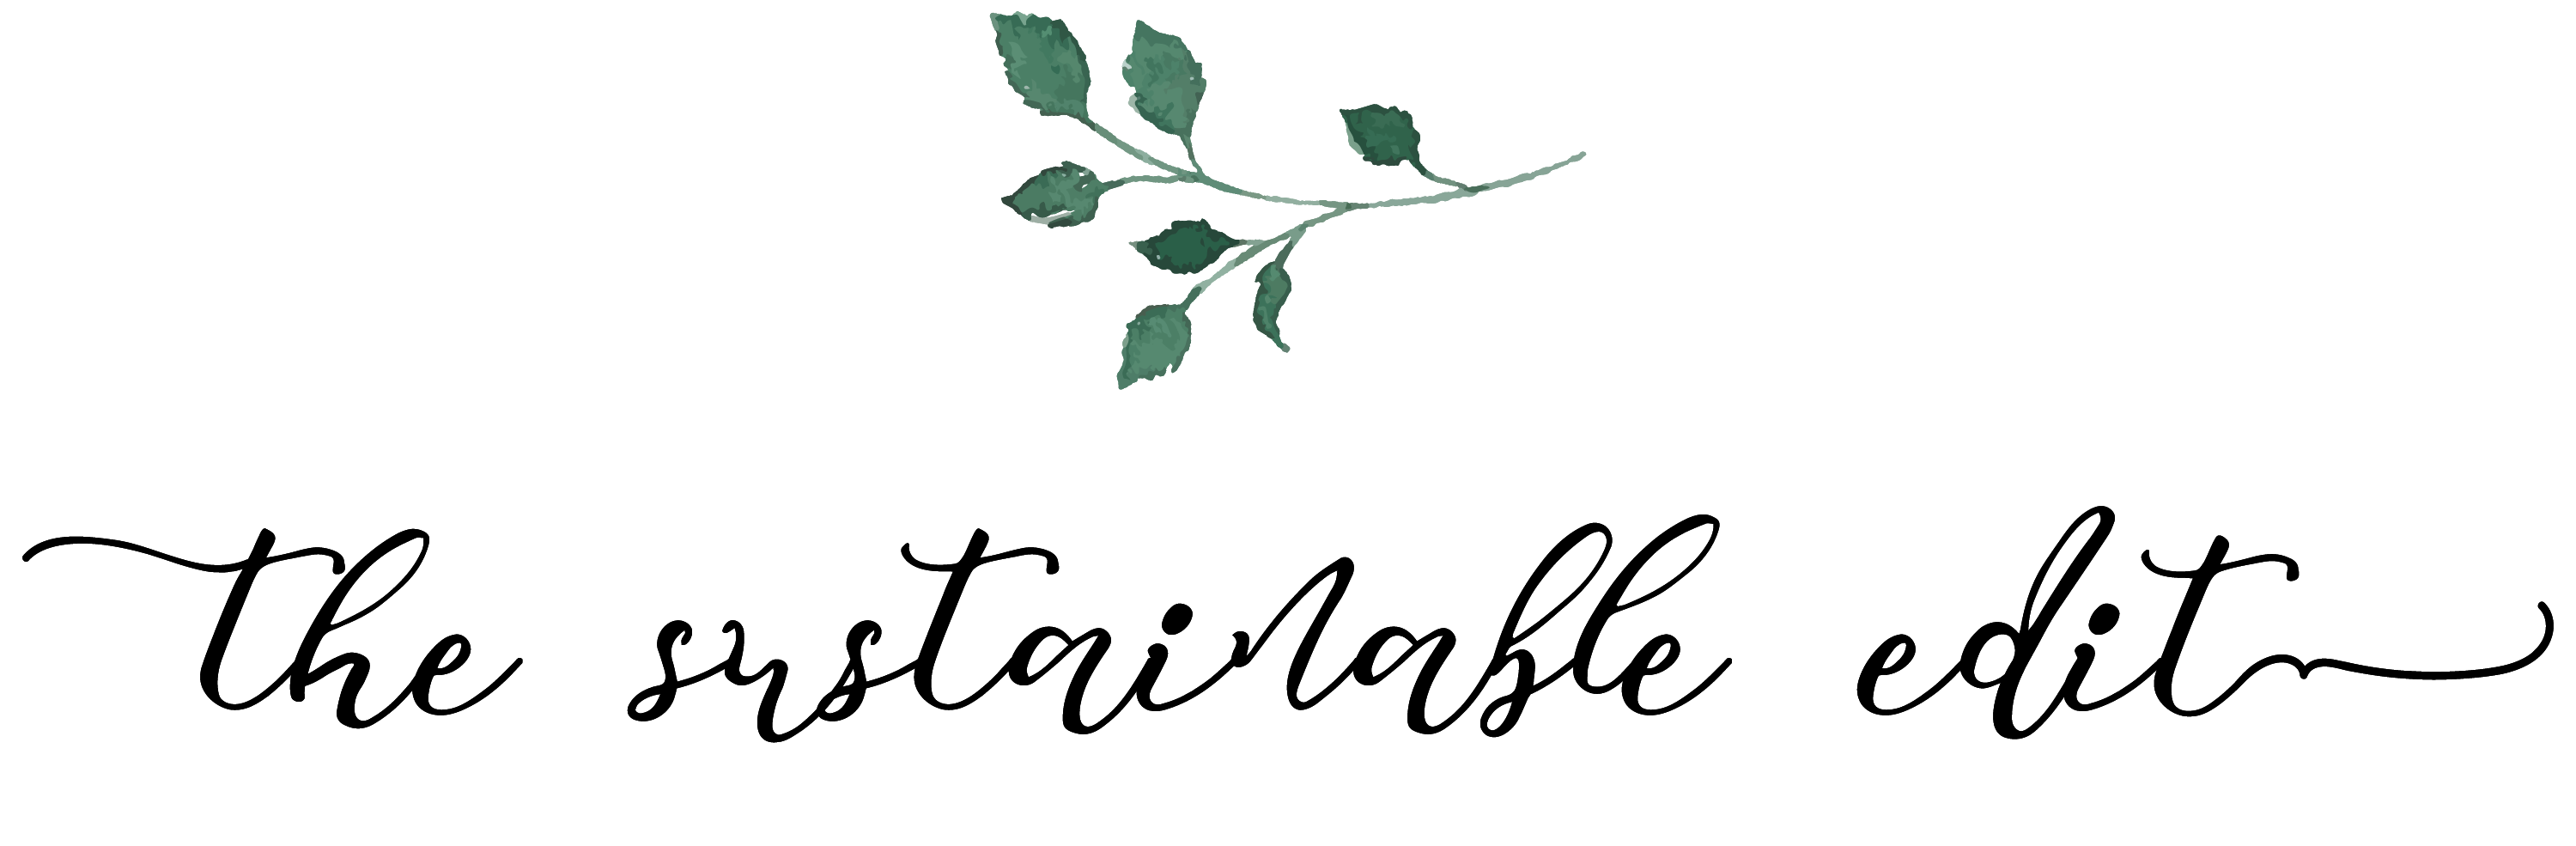 Cactus clipart minimalist. Archives the sustainable edit